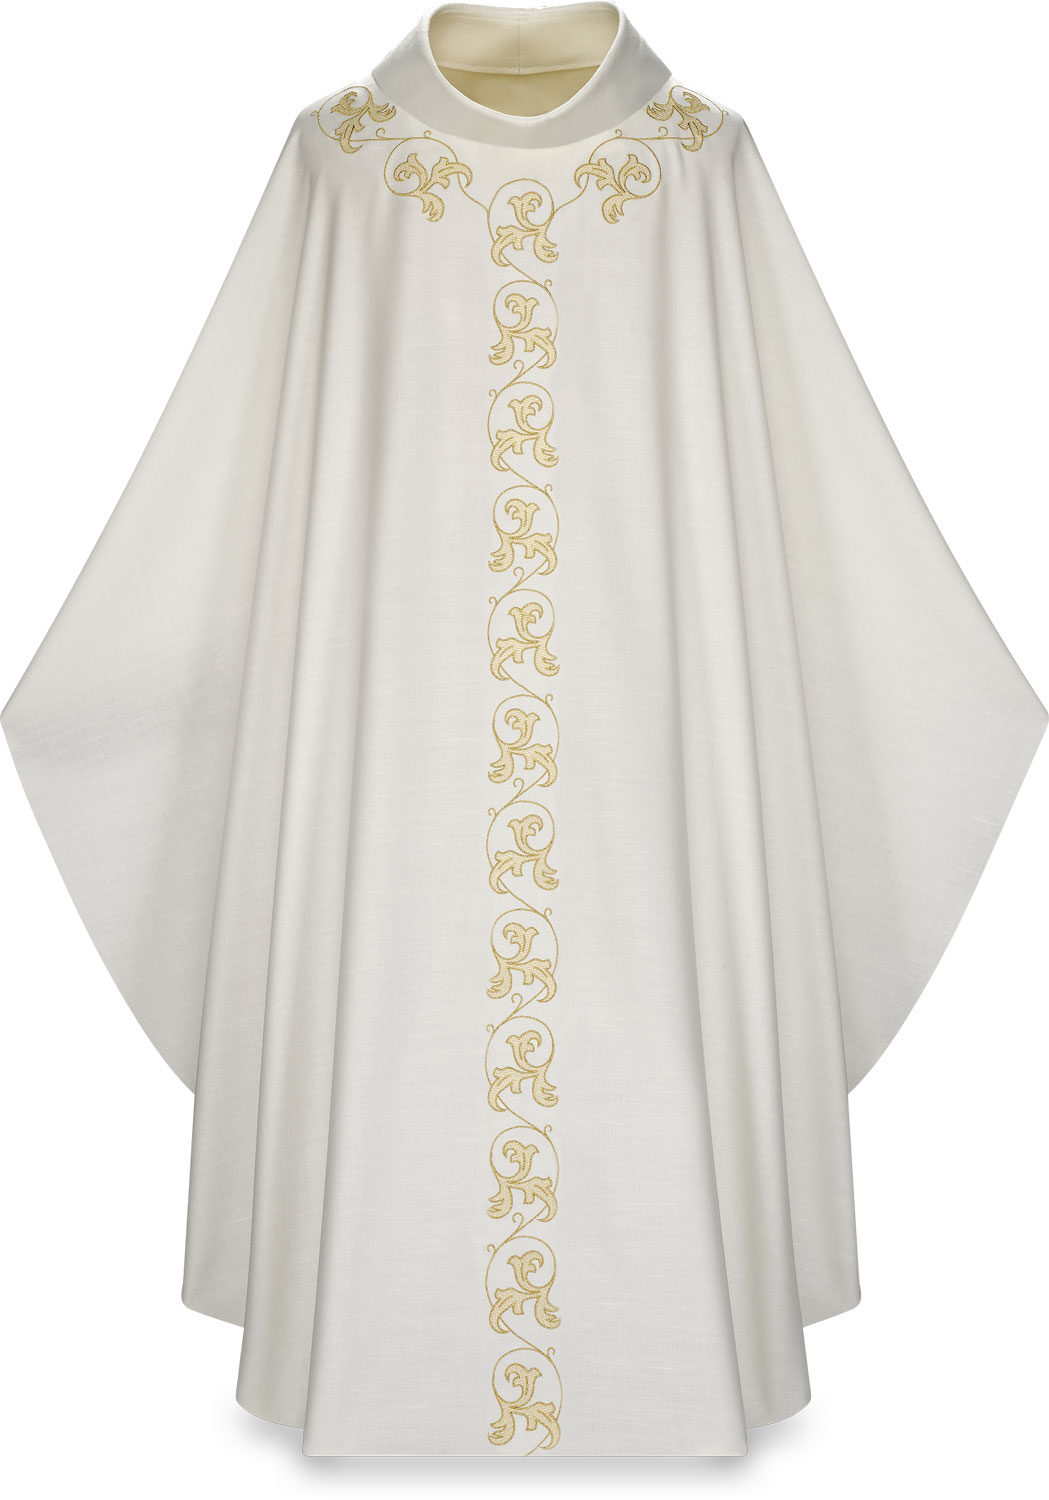 Chasuble | White | 5223 | Slabbinck